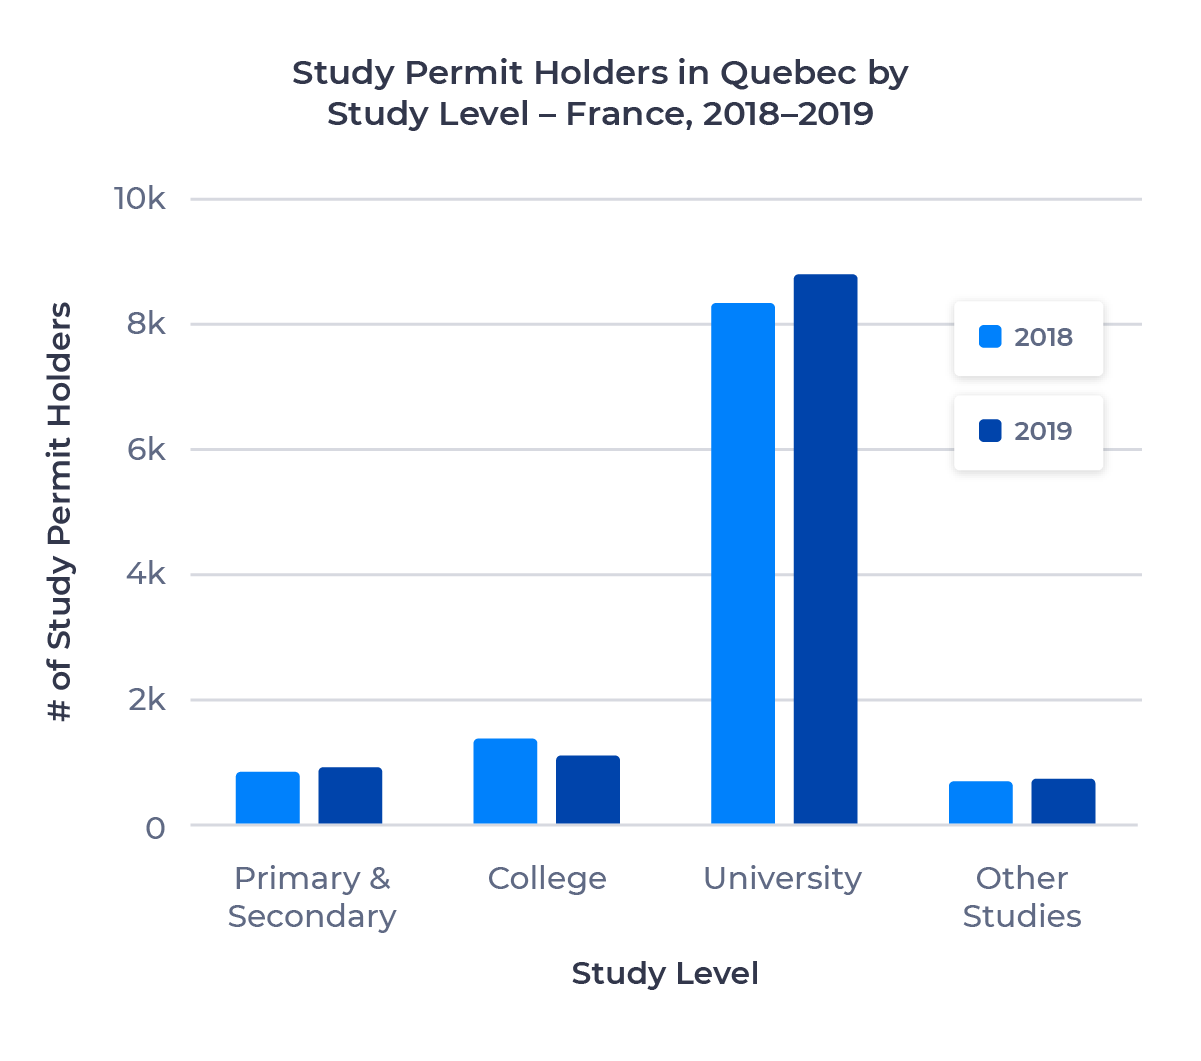 Bar chart showing the number of study permit holders in Quebec from France by study level. Described in detail below.